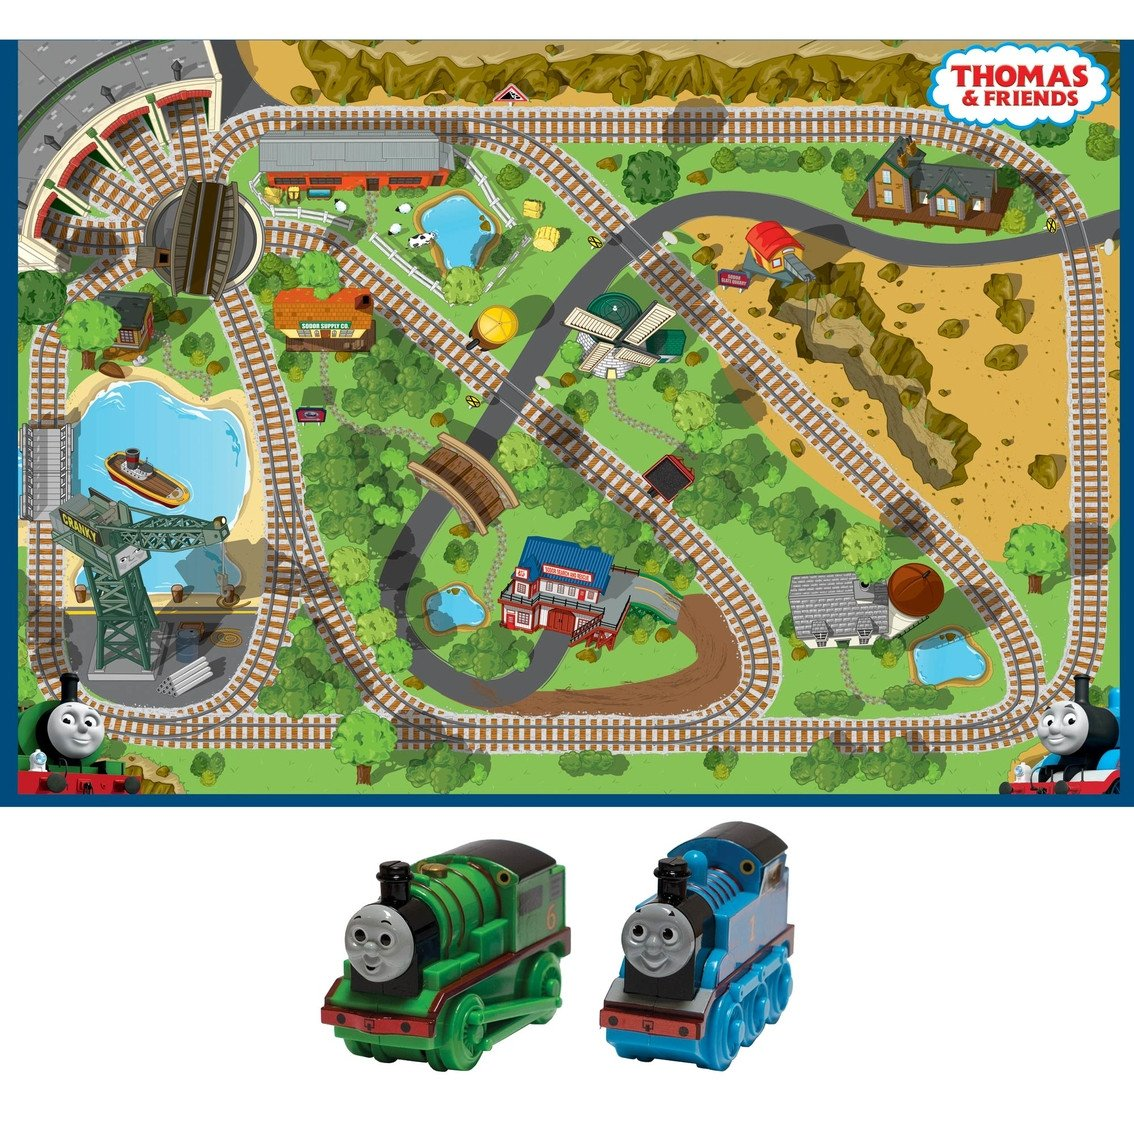 Thomas the Train Bedroom Decor Lovely Fisher Price Thomas & Friends Thomas View Interactive Game